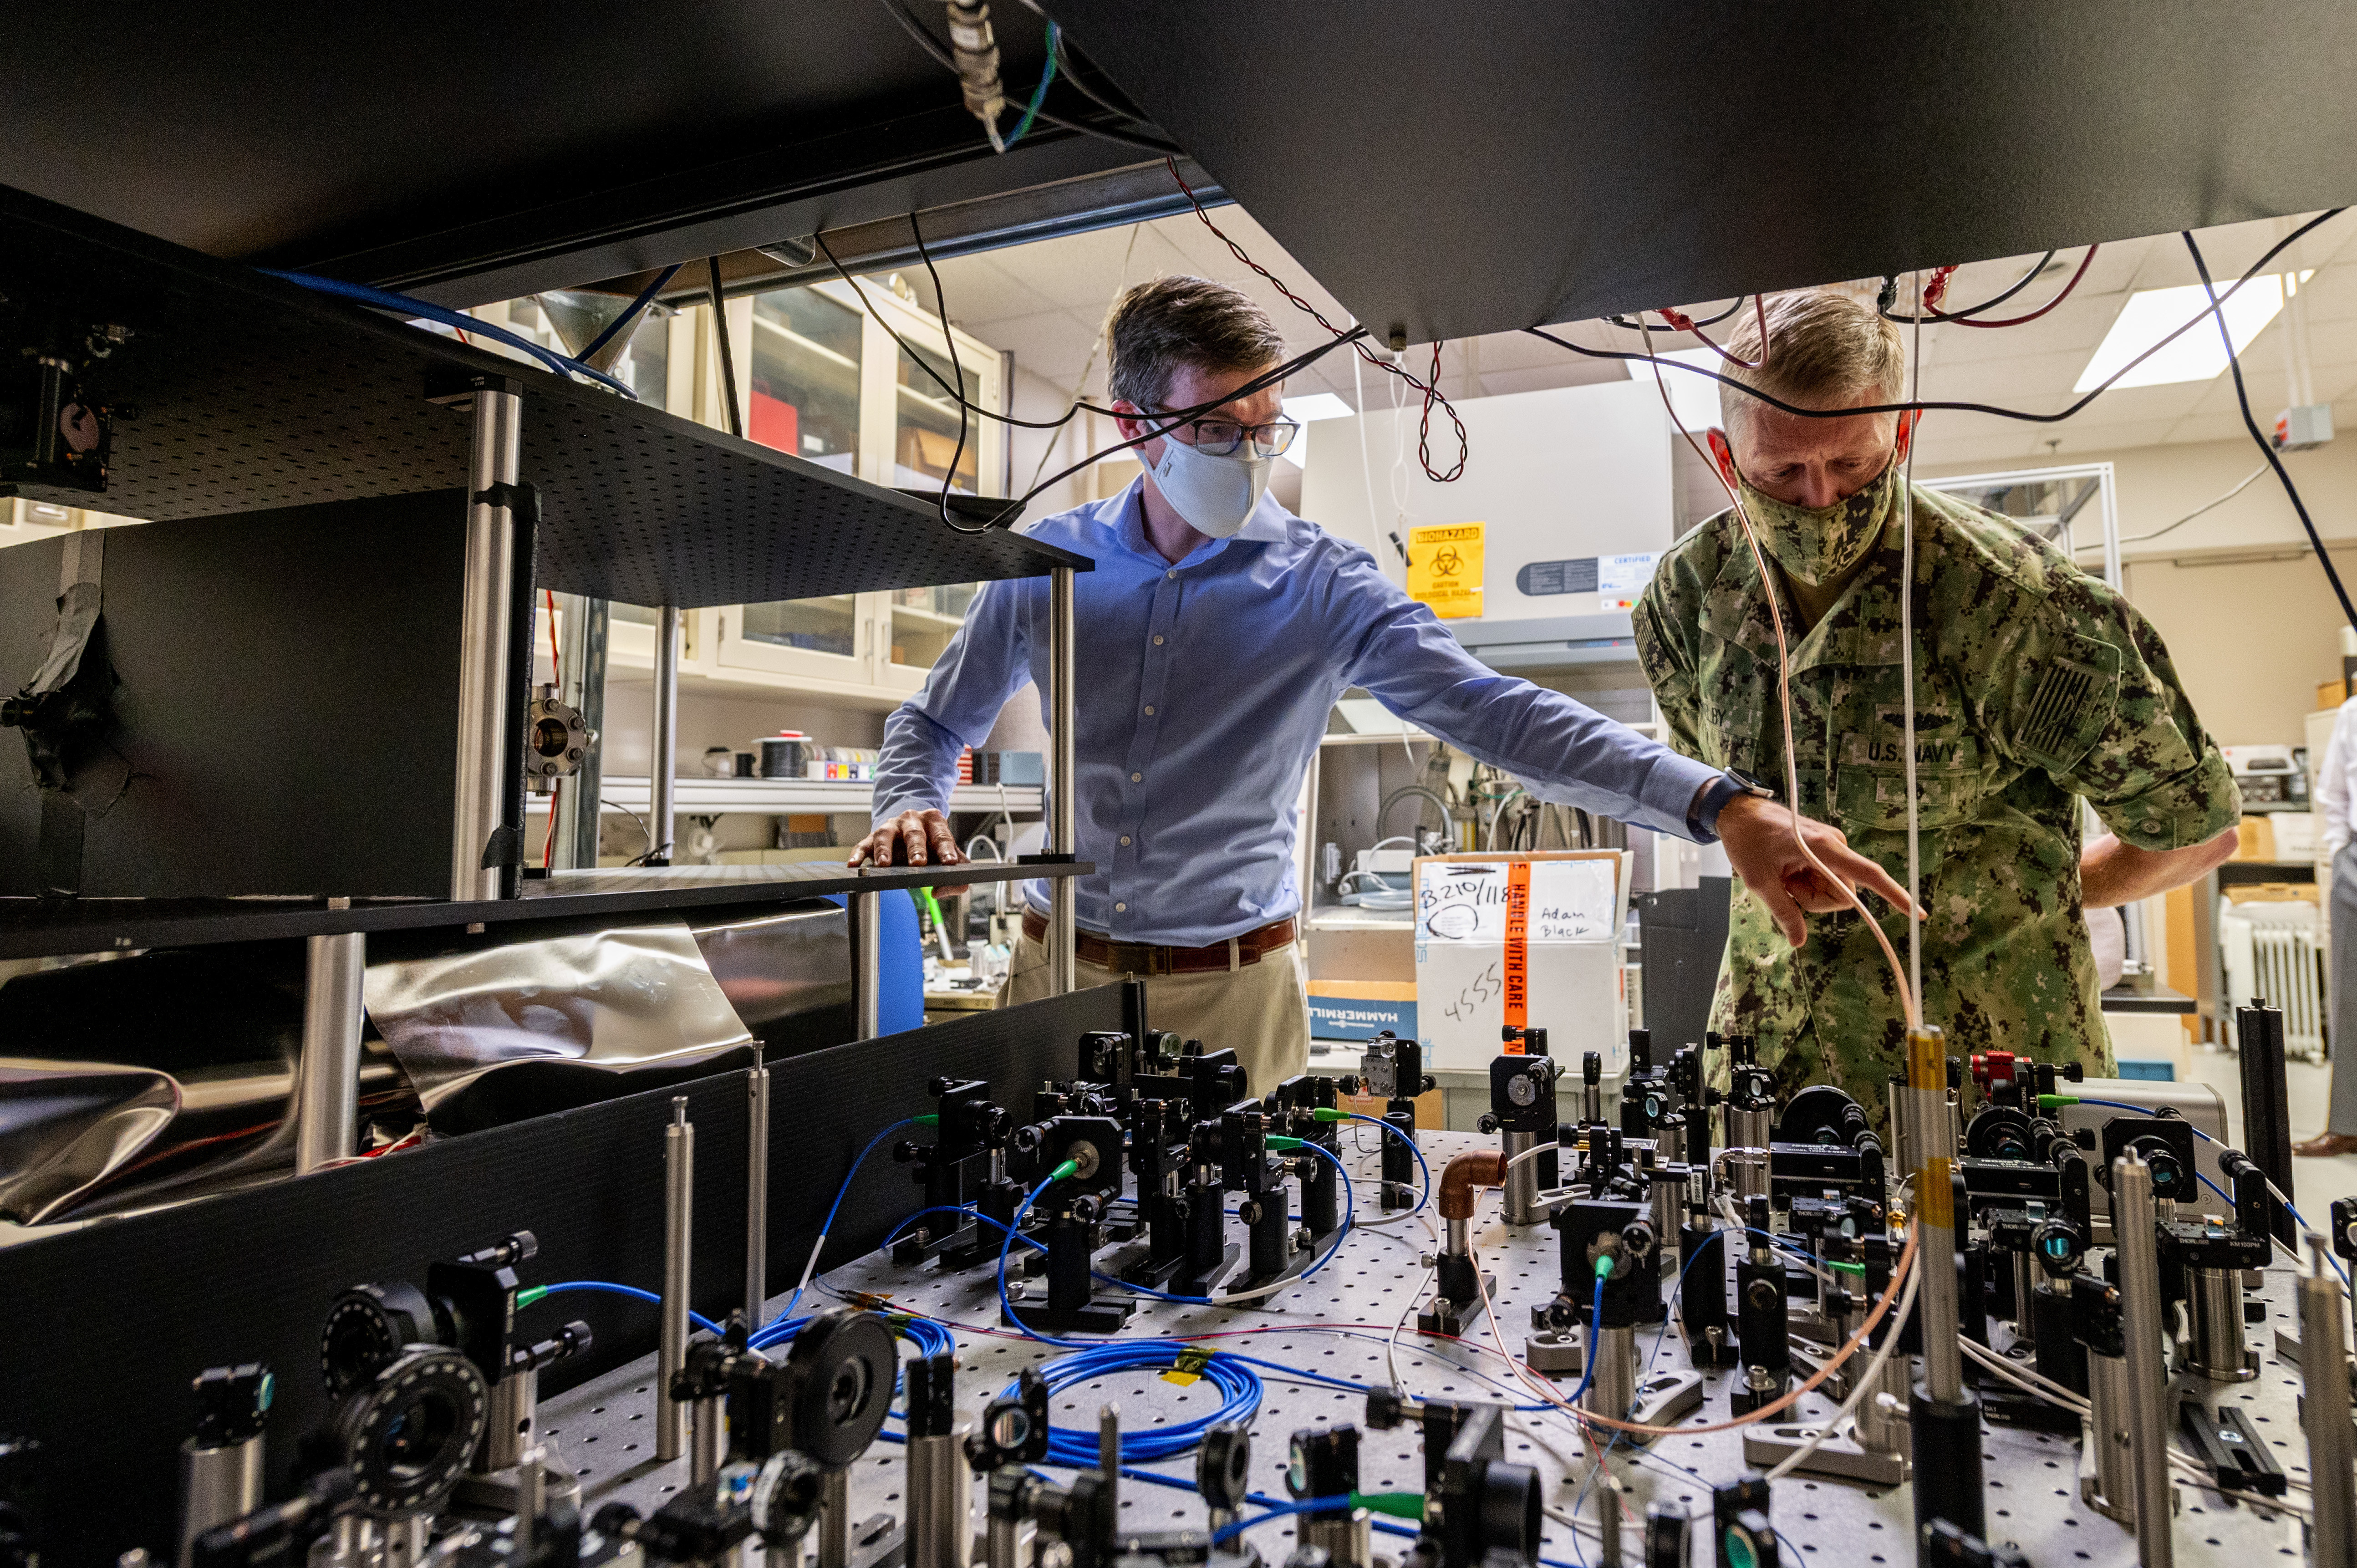 Jonathan Kwolek, a U.S. Naval Research Laboratory research physicist, shows an atom interferometer to Chief of Naval Research Rear Adm. Lorin Selby Sept. 14, 2020, at Naval Research Labratory (NRL) facilities in Washington, D.C.